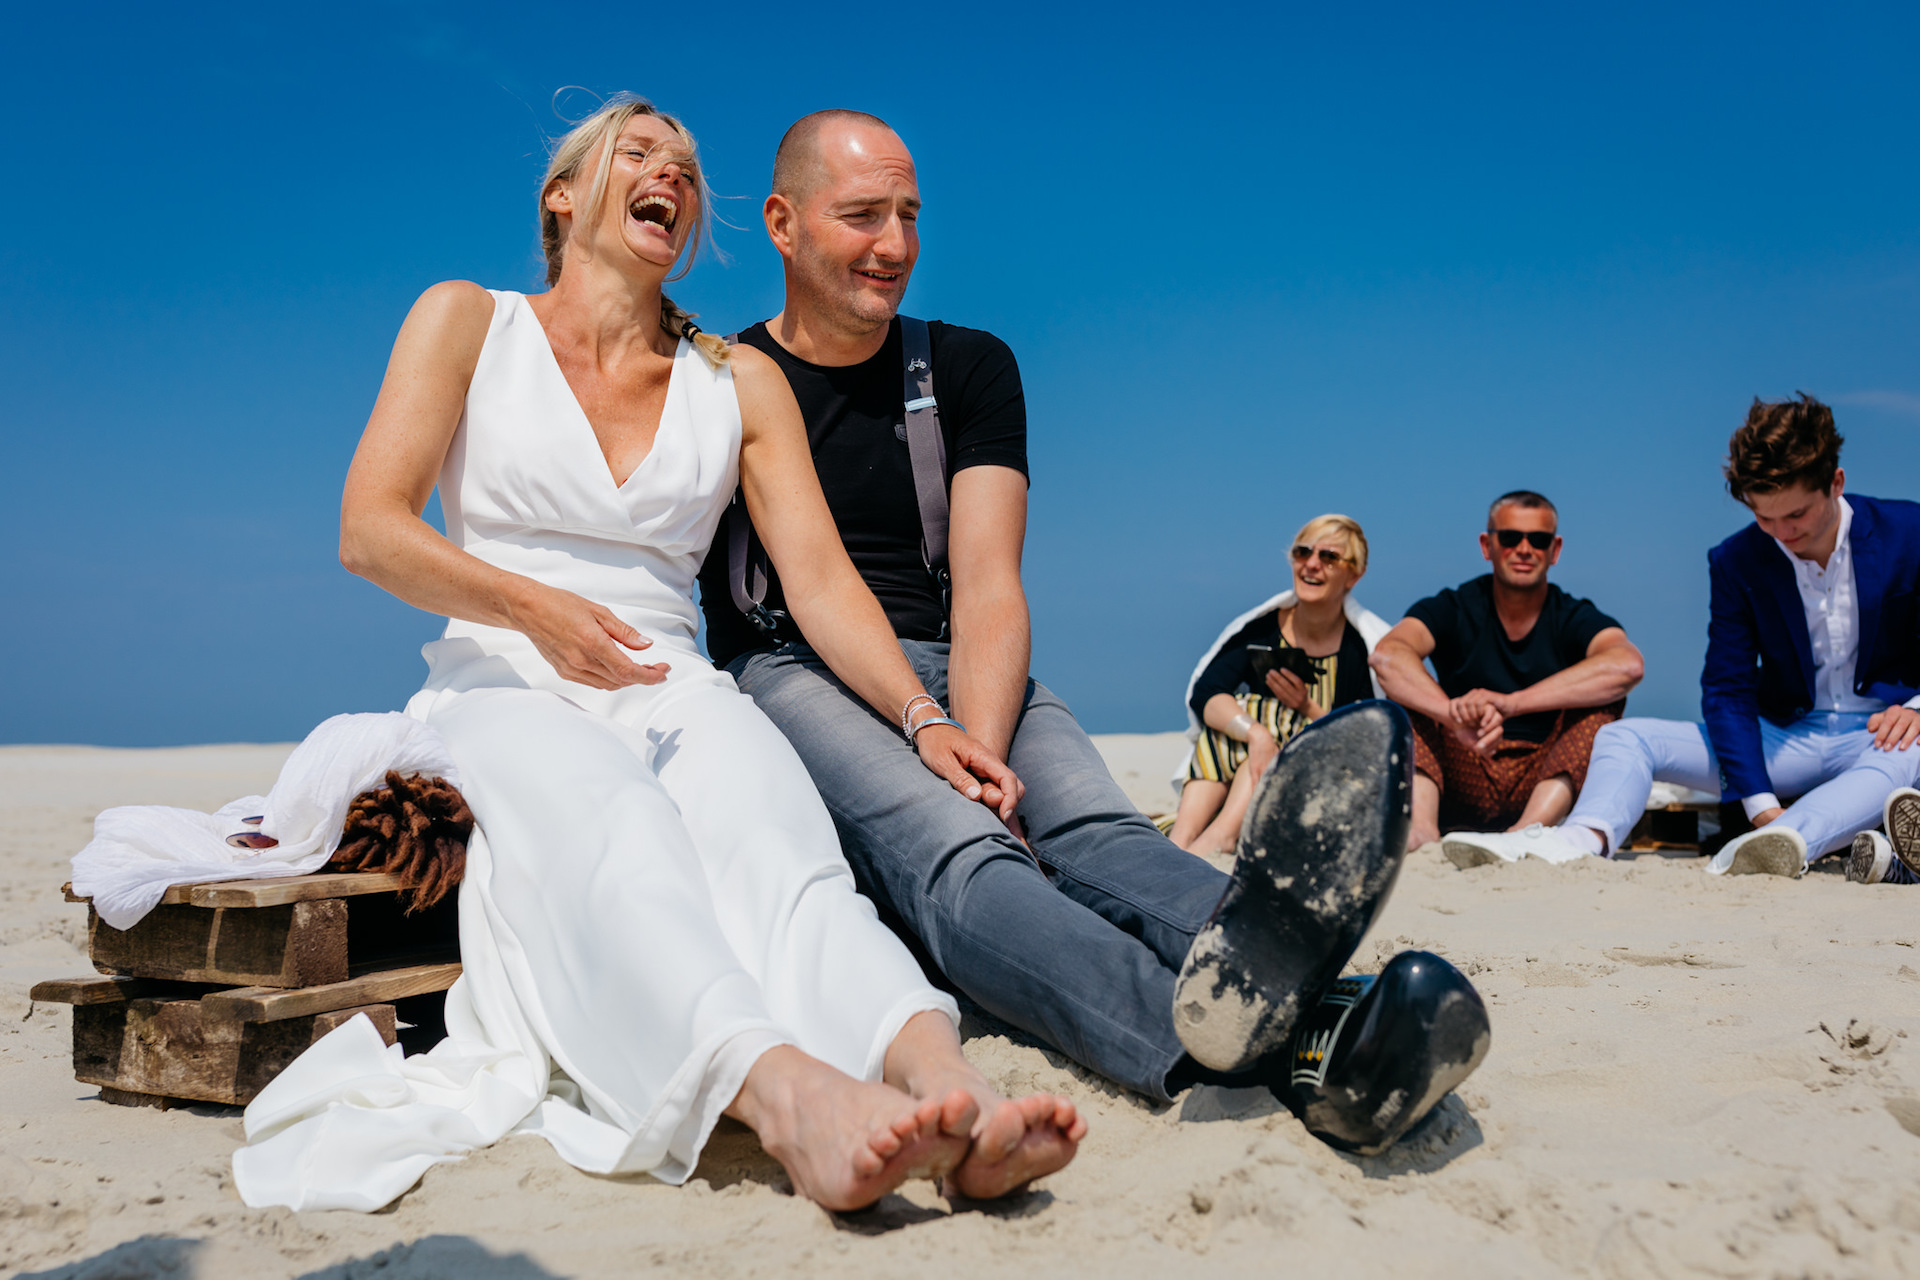 Leonard Walpot, of Utrecht, is a wedding photographer for Terschelling